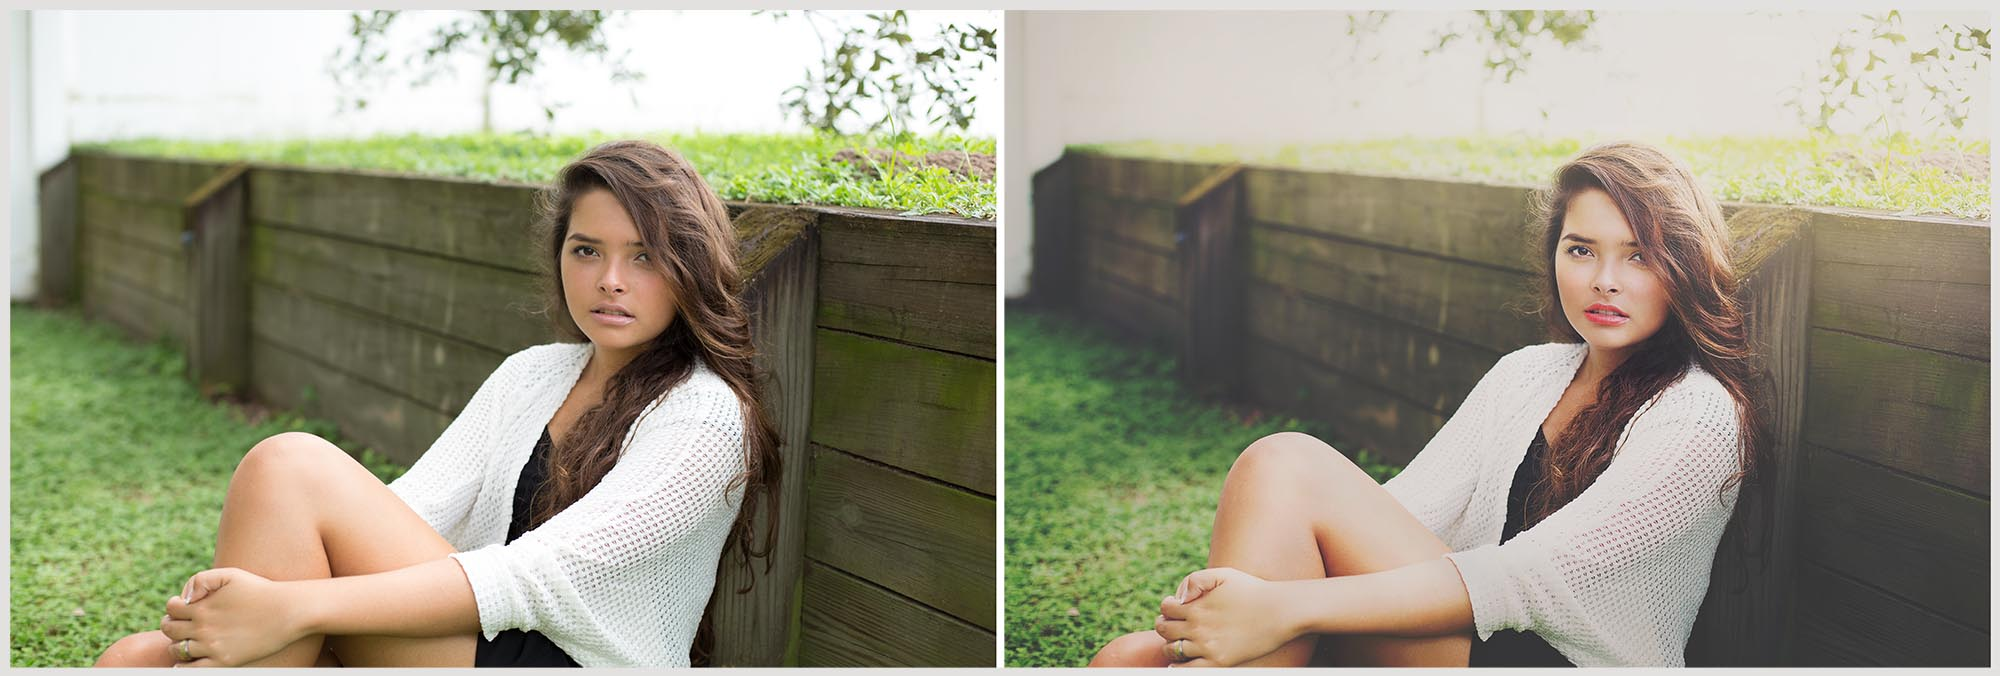 before-and-after-using-transcendent-photoshop-actions